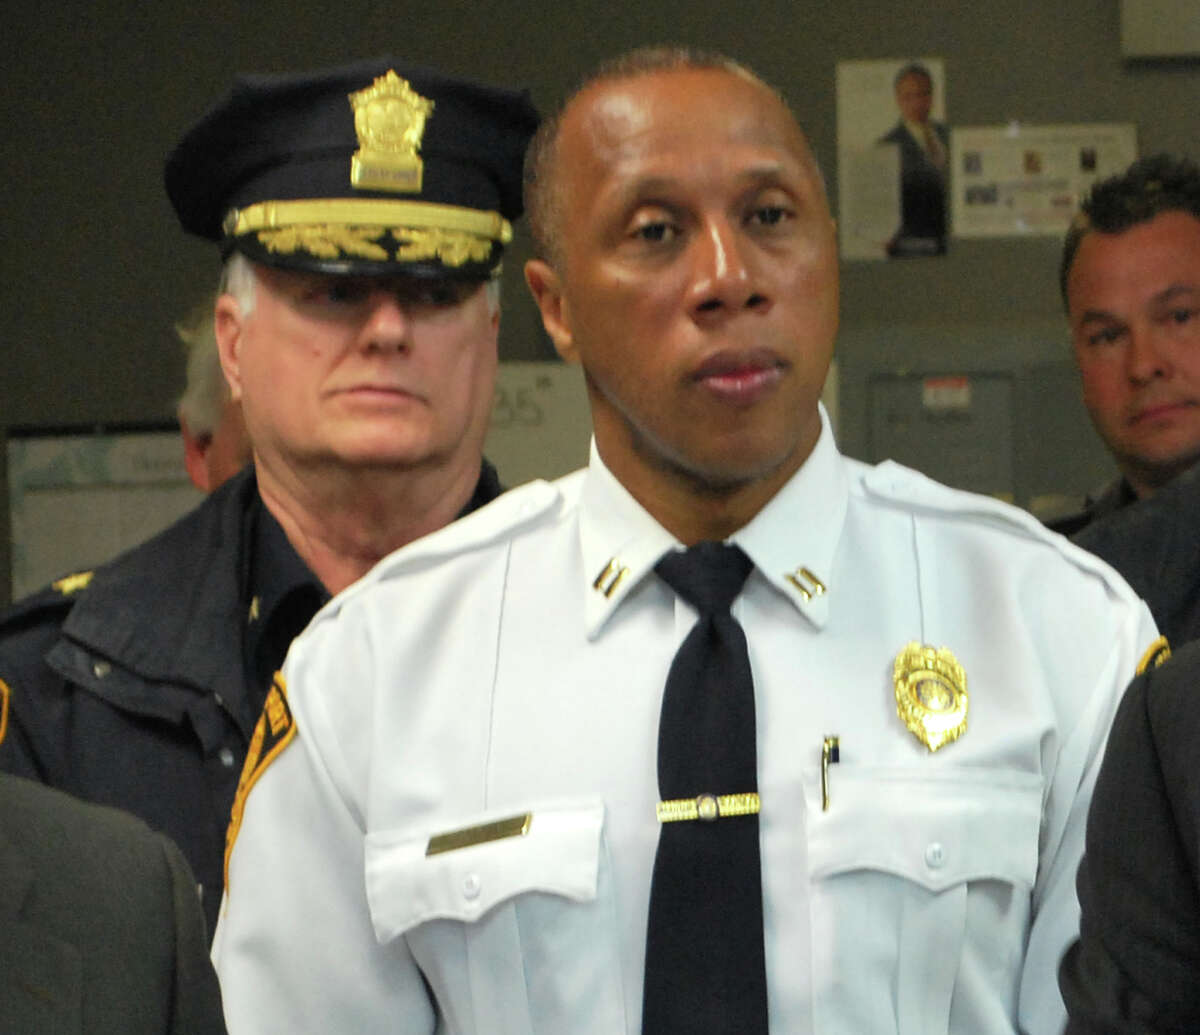 Police Captain Roderick Porter at a press conference on Monday, March 14, 2016.